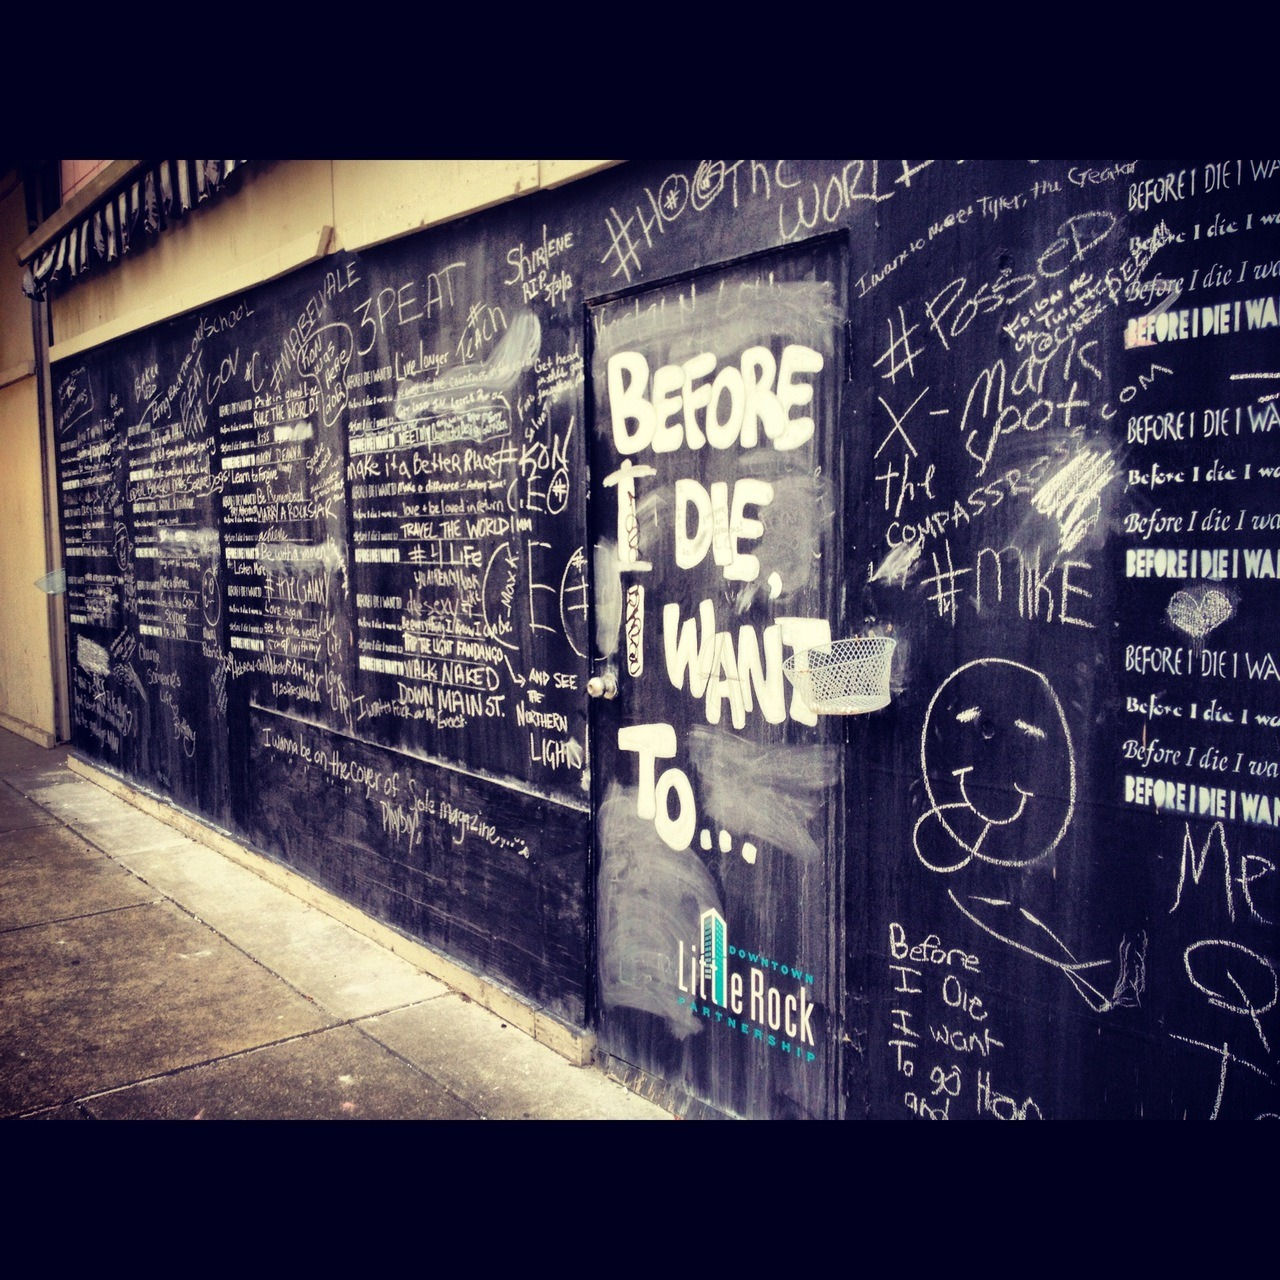 Before I Die / 101-105 W Capitol Ave / Downtown / Little Rock, AR / 06.03.12 / 3:19PM